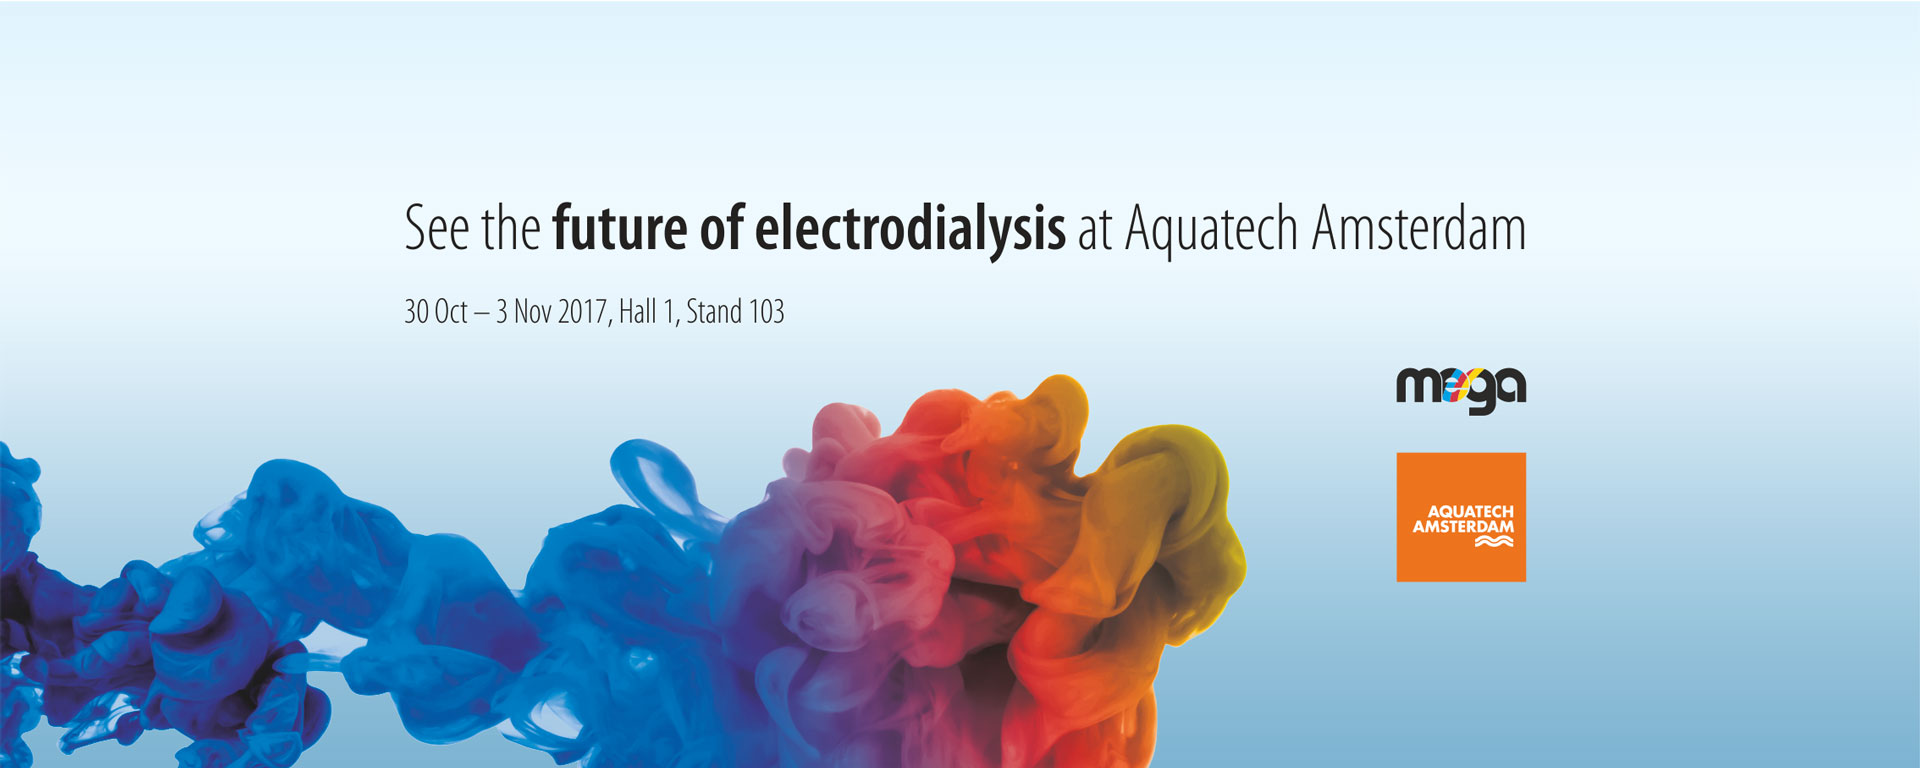 See the future of electrodialysis at MEGA stand 103 at Aquatech Amsterdam